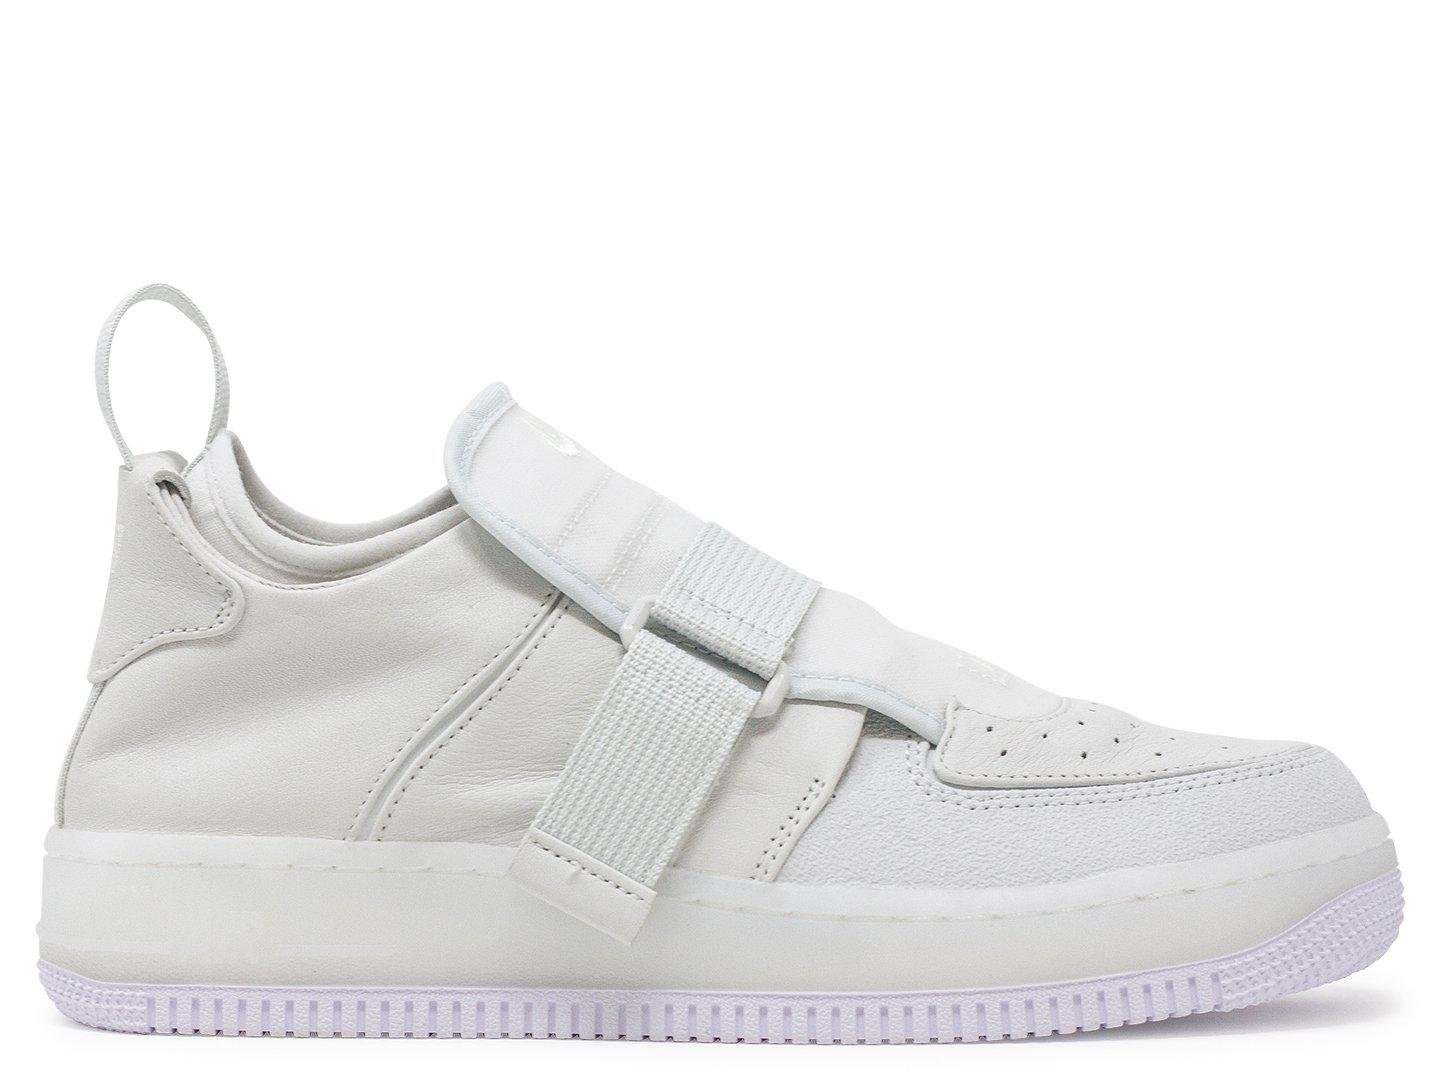 nike air force 1s reimagined ventures